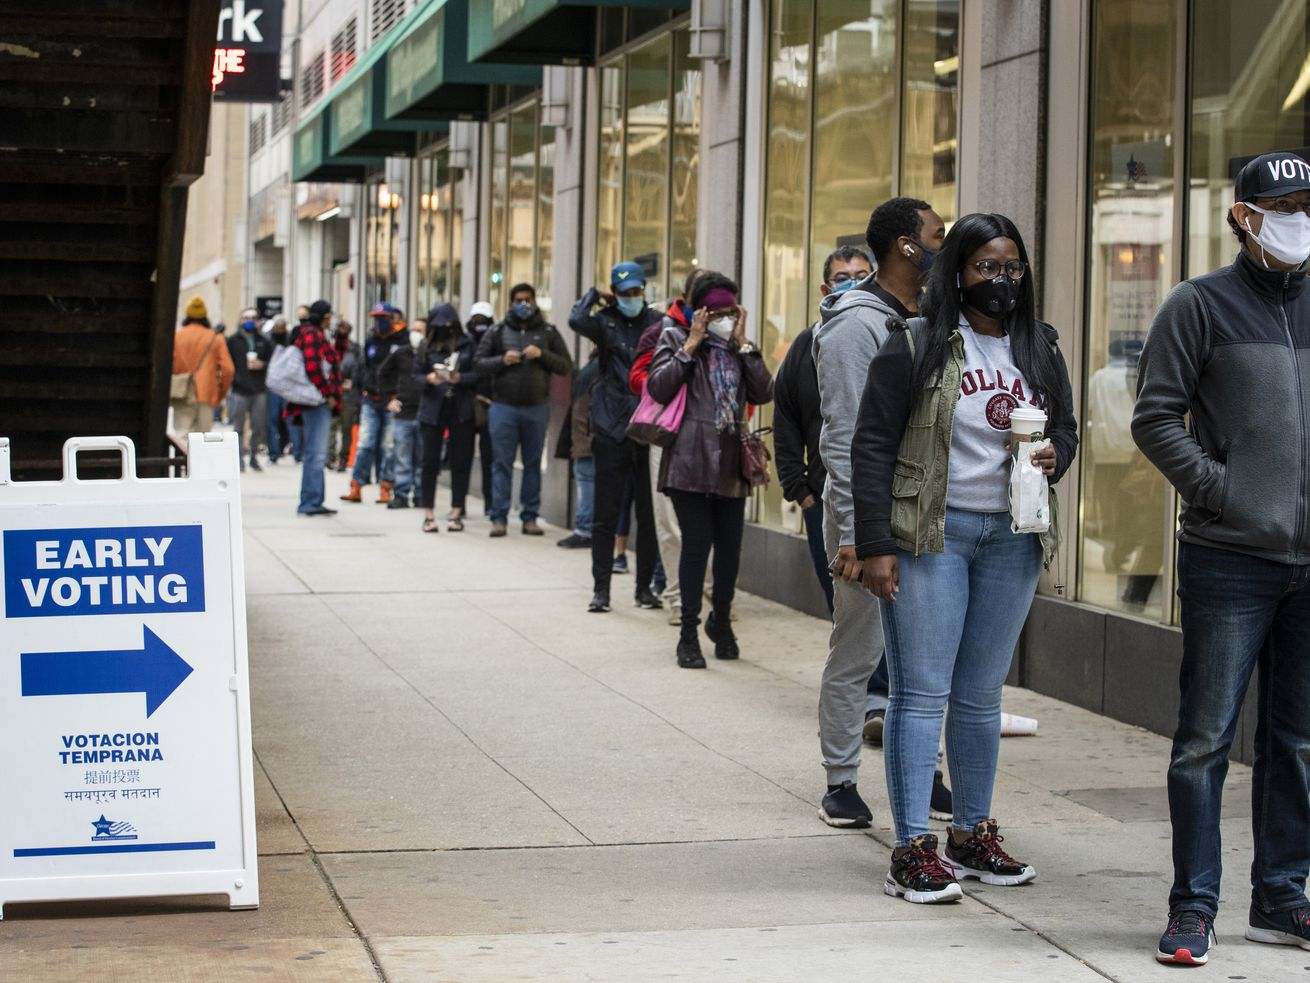 Hundreds of people wait in line to early vote at the Loop Super Site on Oct. 1, 2020.